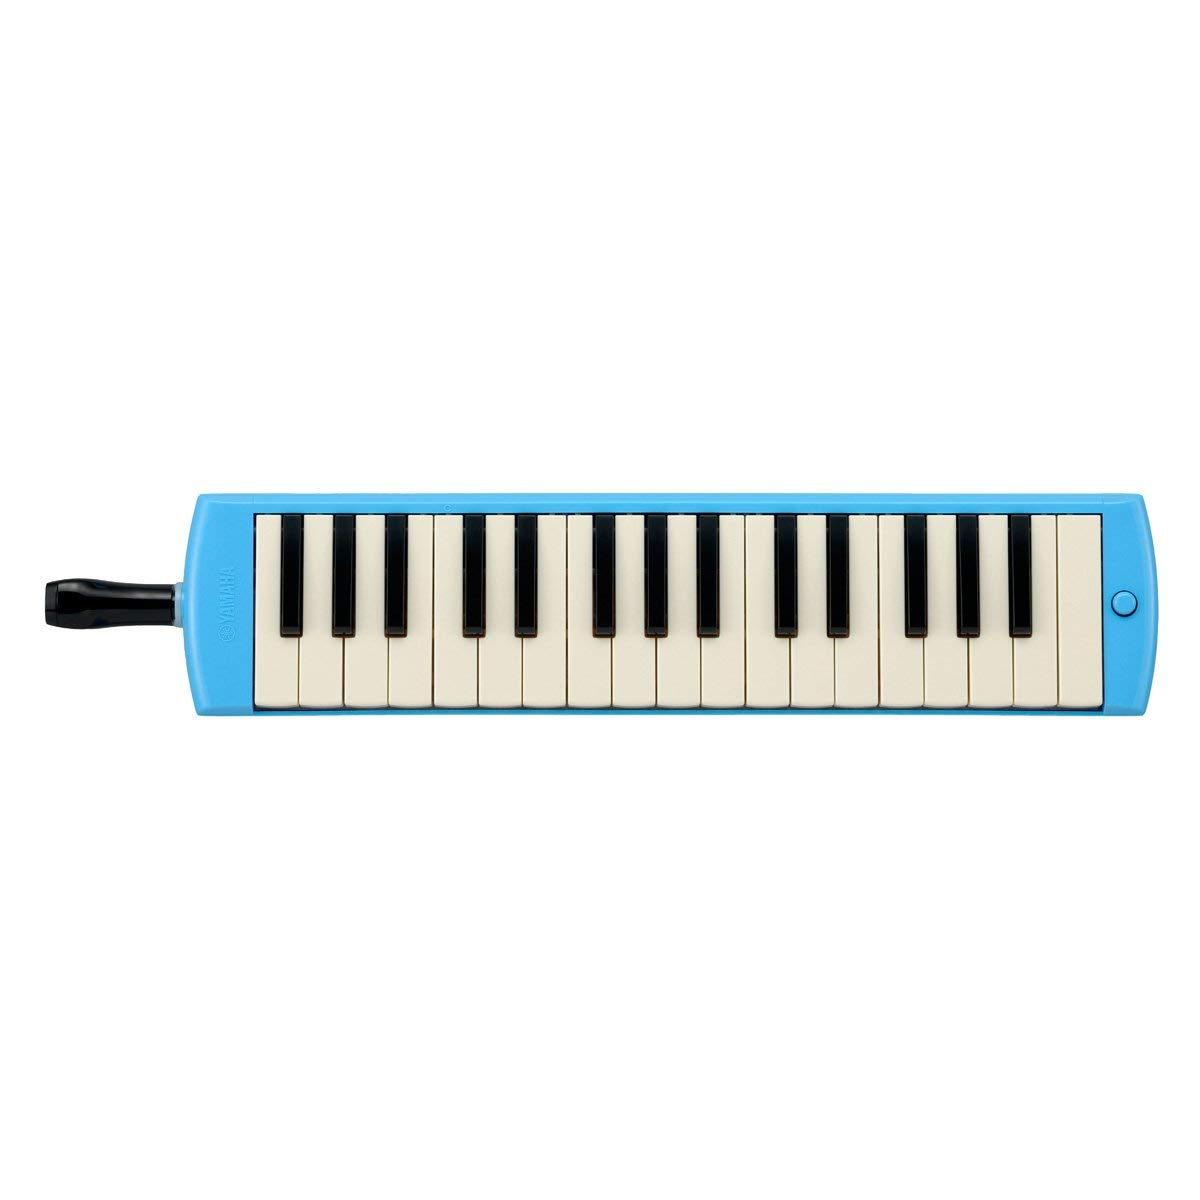 YAMAHA PIANICA 32keys (blue) P-32E by YAMAHA